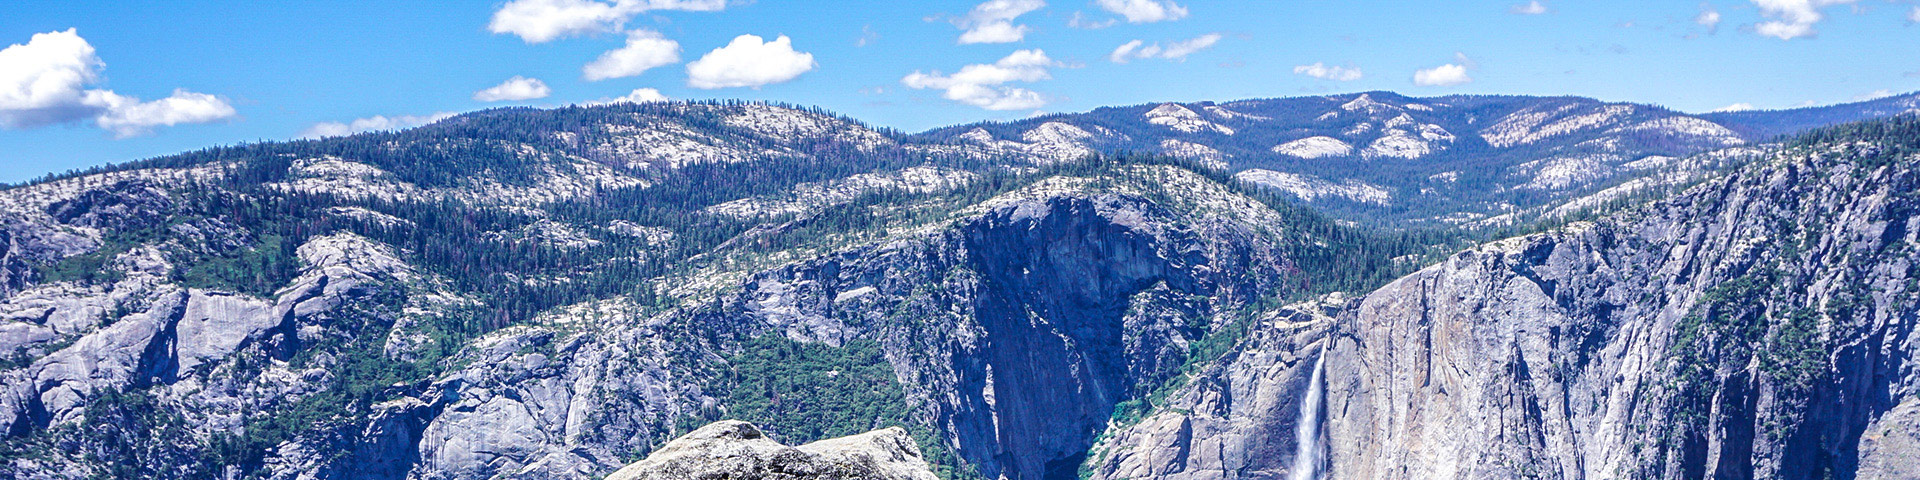 Panorama on the Sentinel Dome to Glacier Point hike in Yosemite Valley